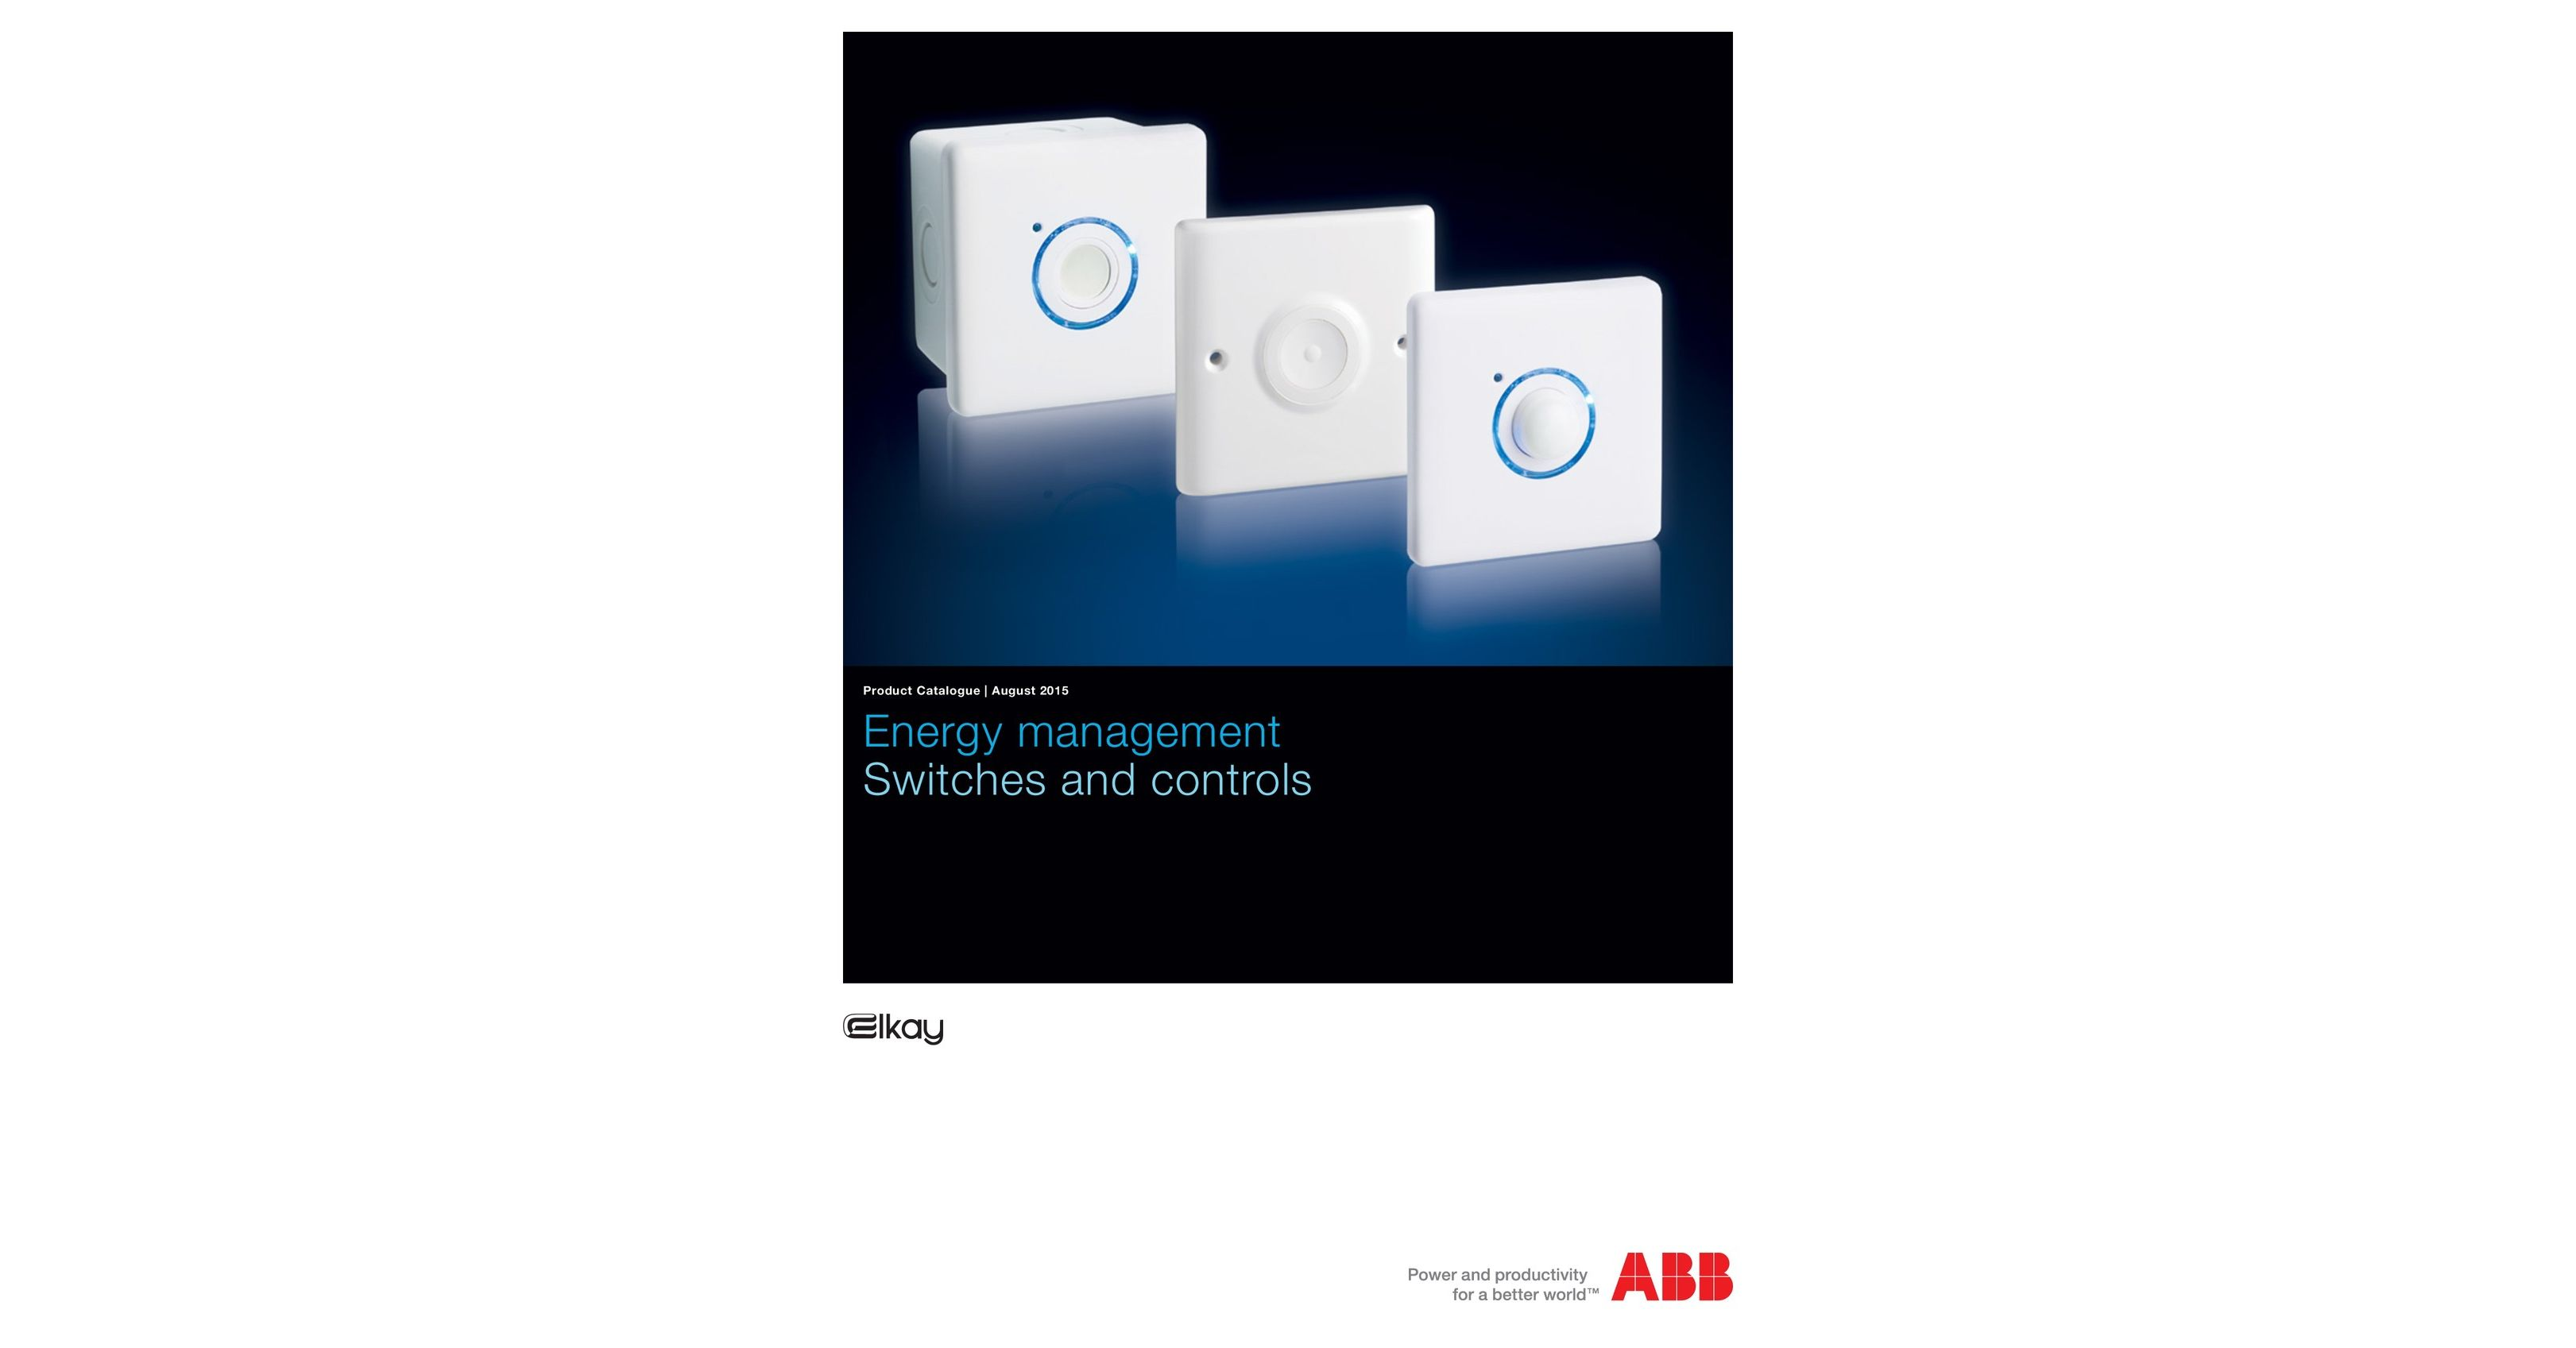 Elkay Timer Switch Wiring Diagram For Energy Management Abb Switches And Controlsdesign